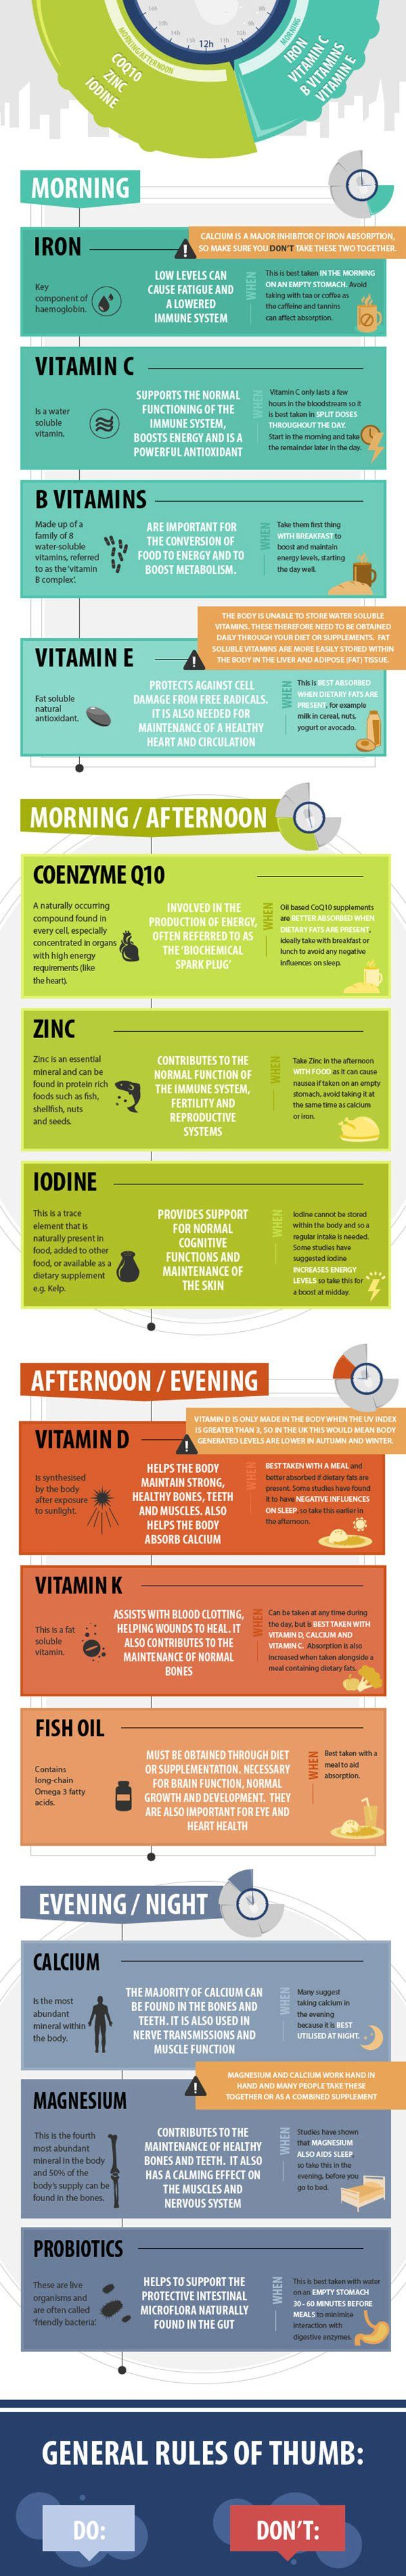 Great infographic about vitamins, minerals and the most effective time to intake them during the day